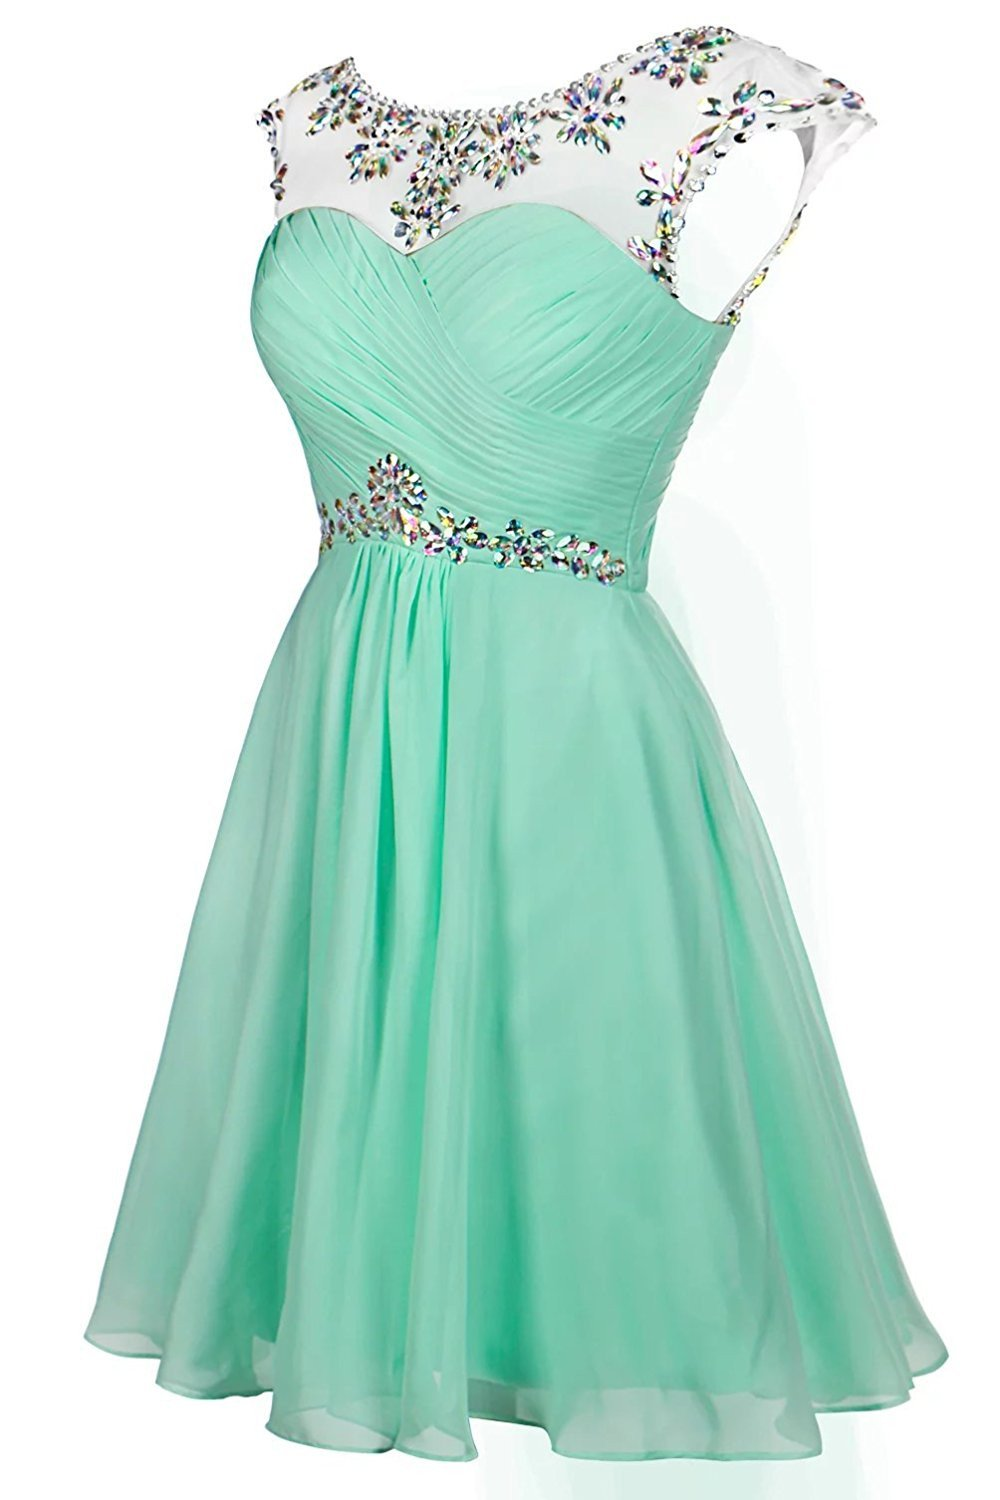 Teal Dresses For Juniors - Ficts